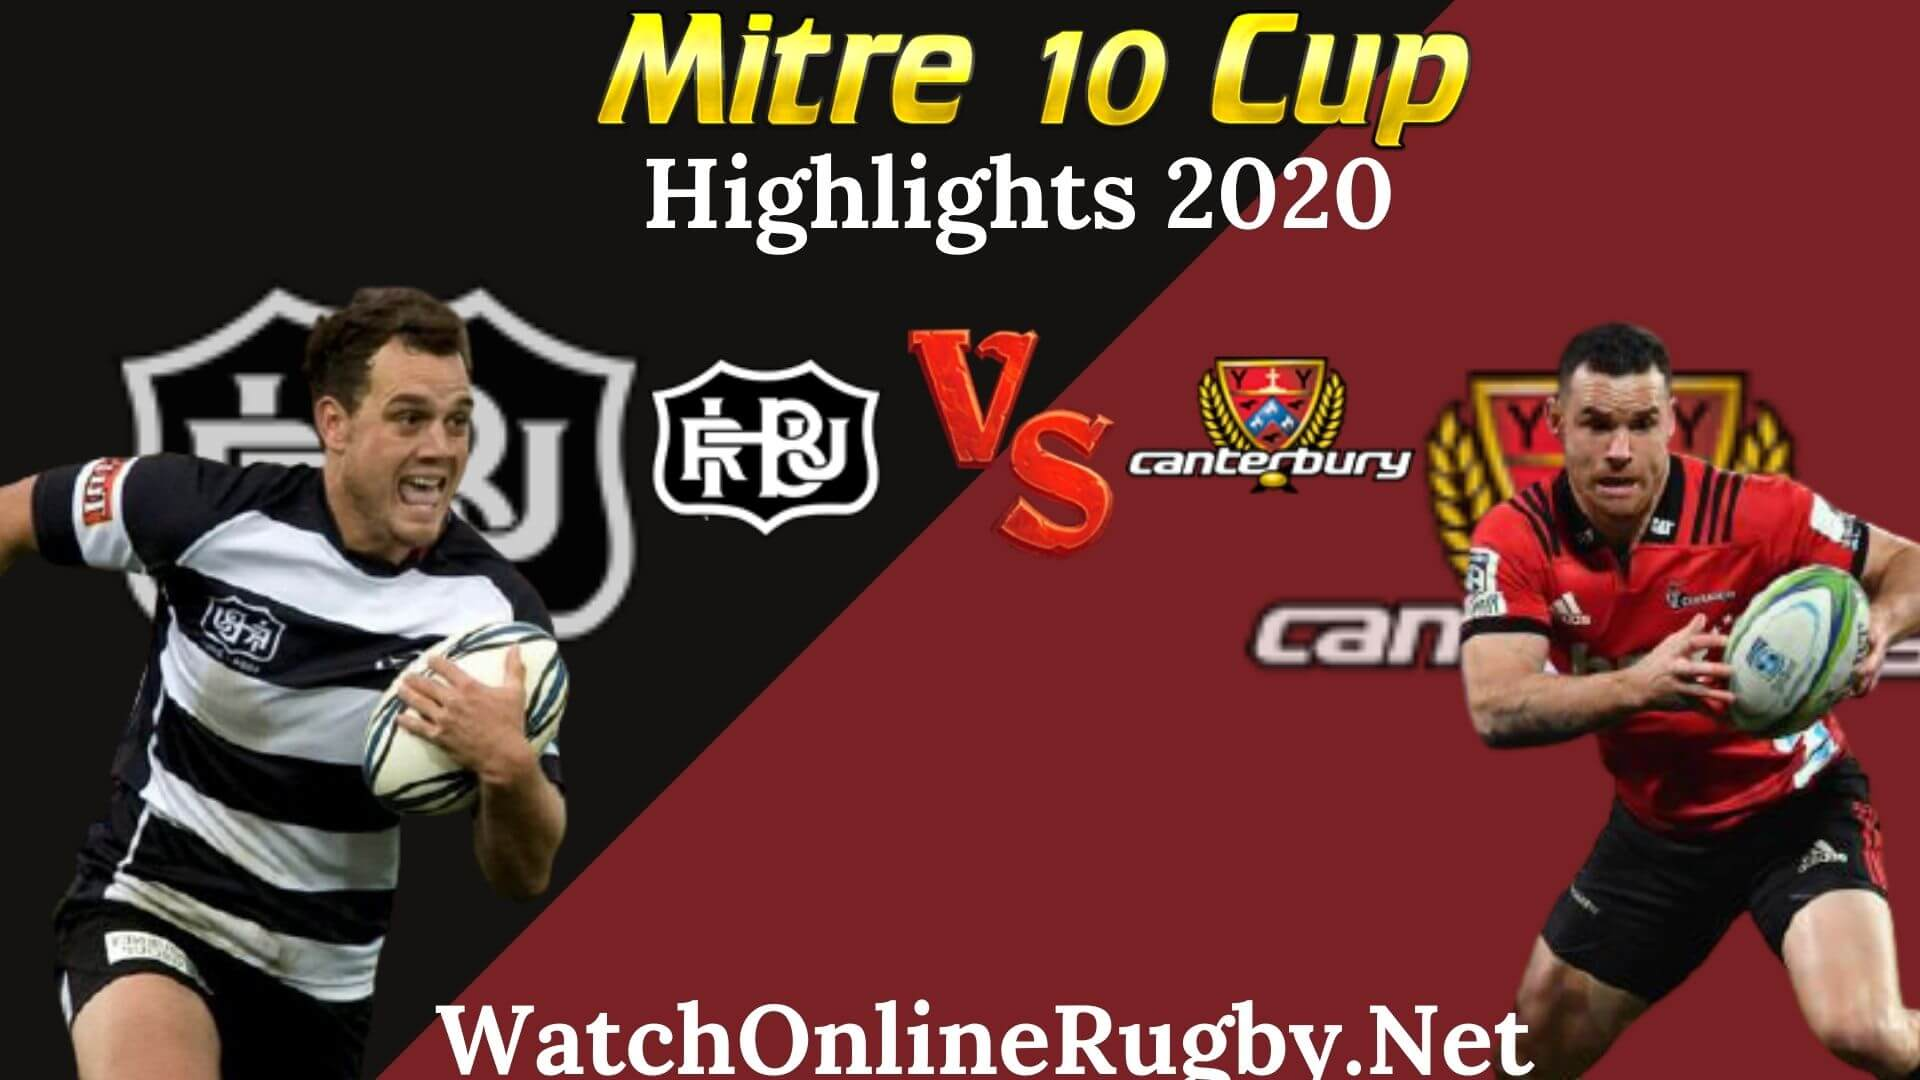 Hawkes Bay vs Canterbury RD 3 Highlights 2020 M10 Cup